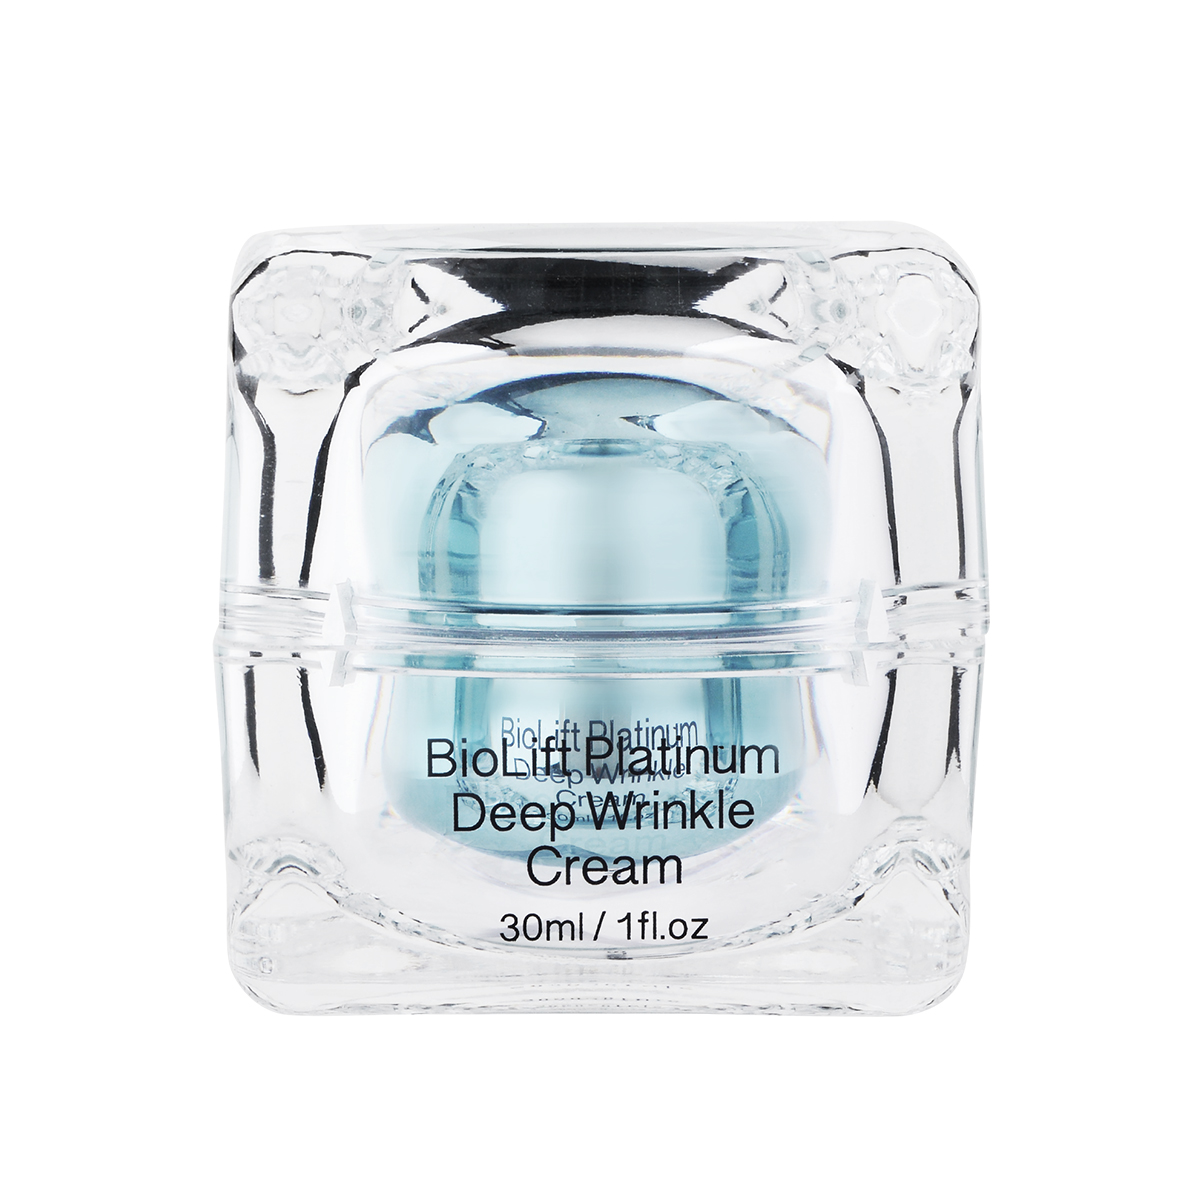 Biolift Platinum Deep Wrinkle Cream back